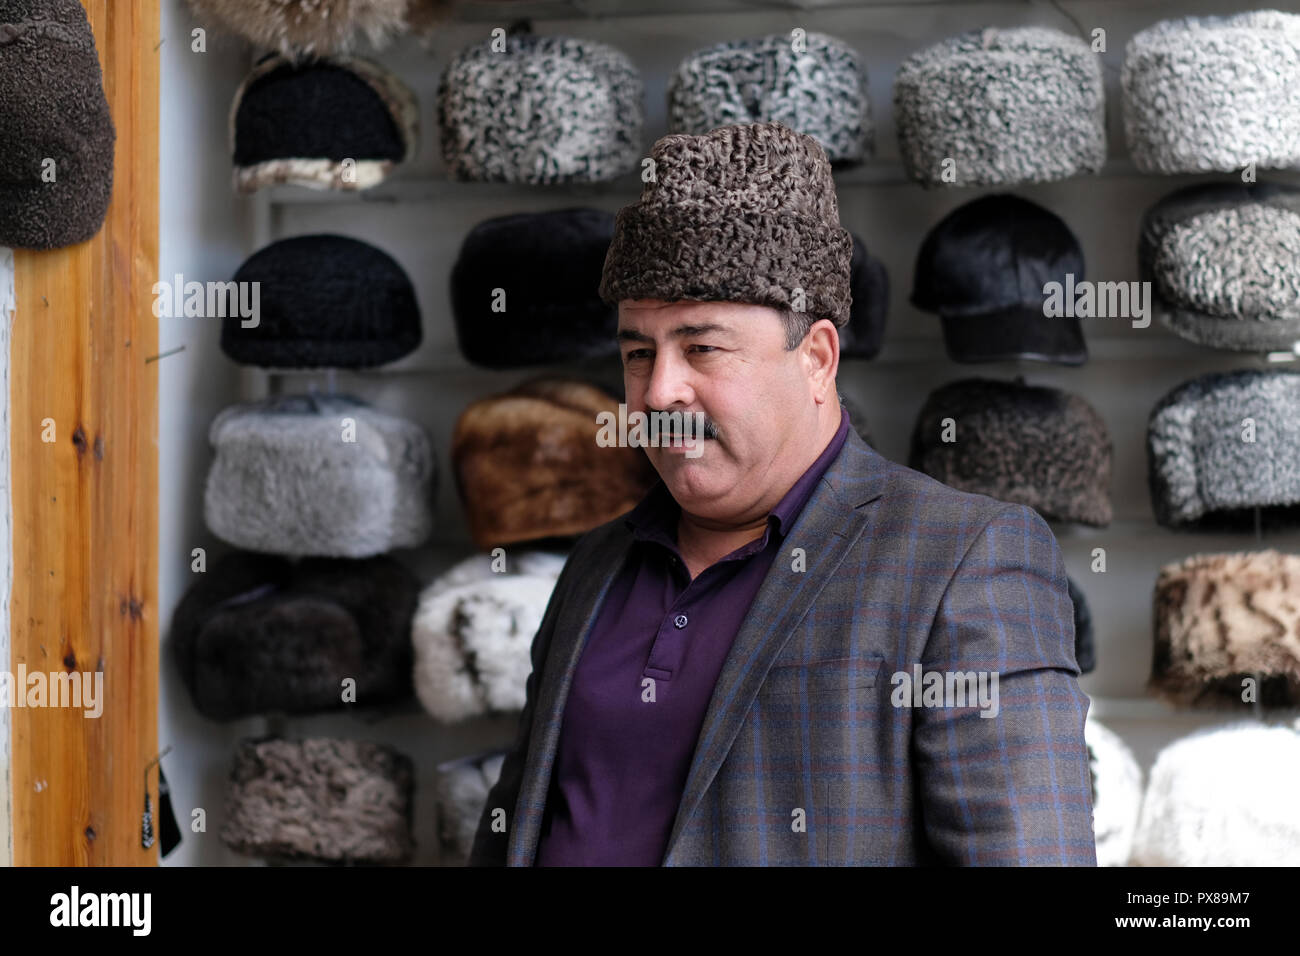 An Uzbek man wearing a Karakul or qaraqul hat traditionally made from the  wool of the karakul sheep in the city of Bukhara in Uzbekistan 14bf676431a5